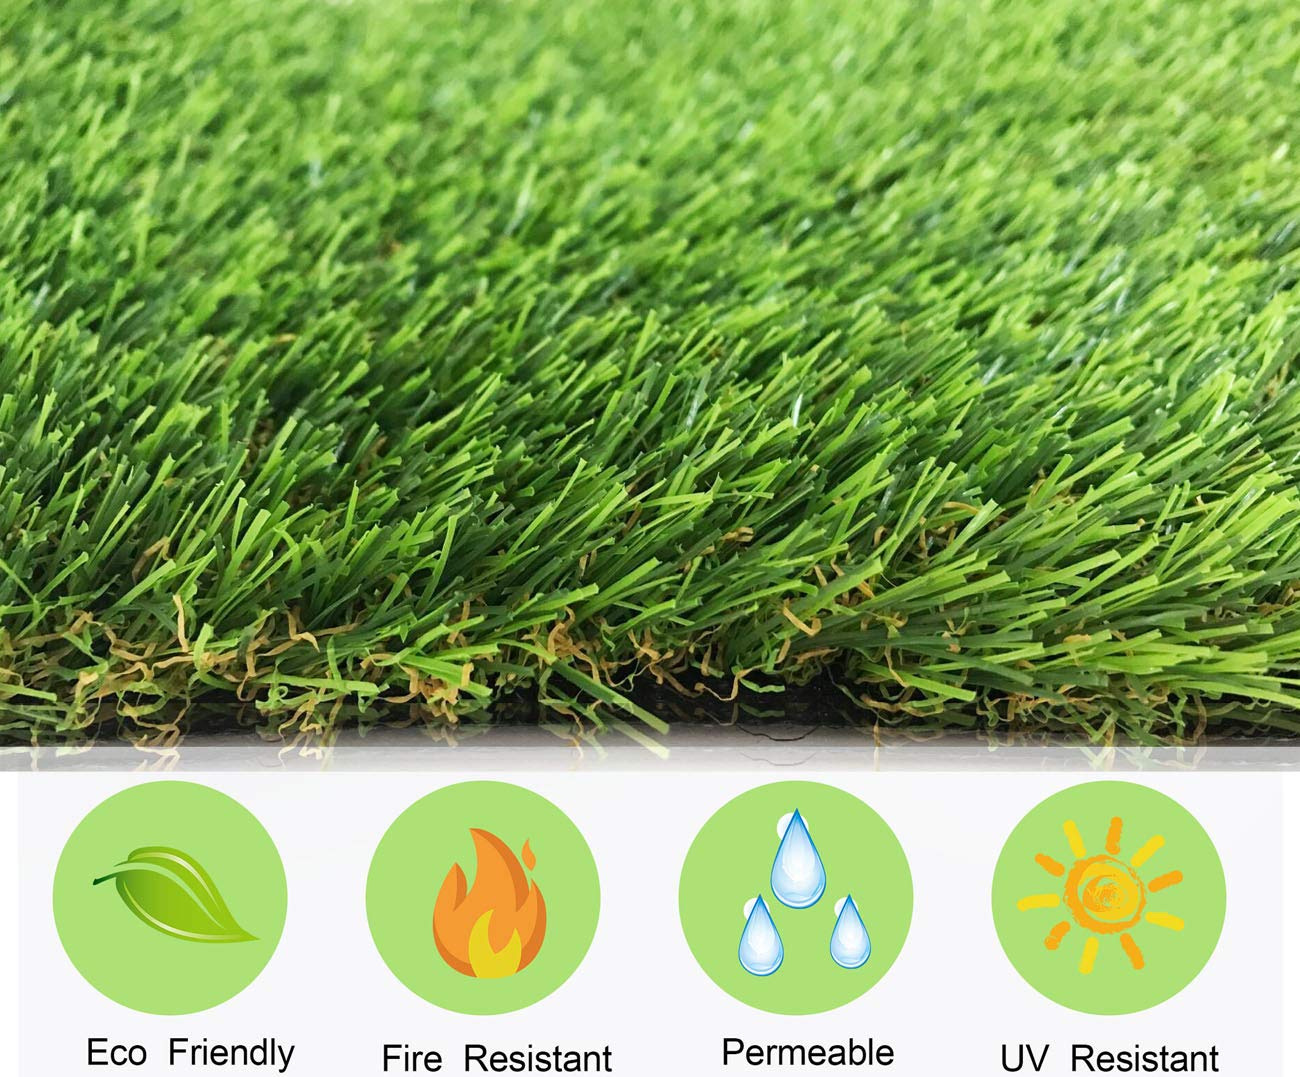 Realistic Artificial Grass Rug Synthetic Turf Thick Fake Carpet Mat Easy Care Rubber Backed with Drainage Holes Lawn Area Mat Garden Doormat Indoor Outdoor Decoration (1.7ft x 2ft)